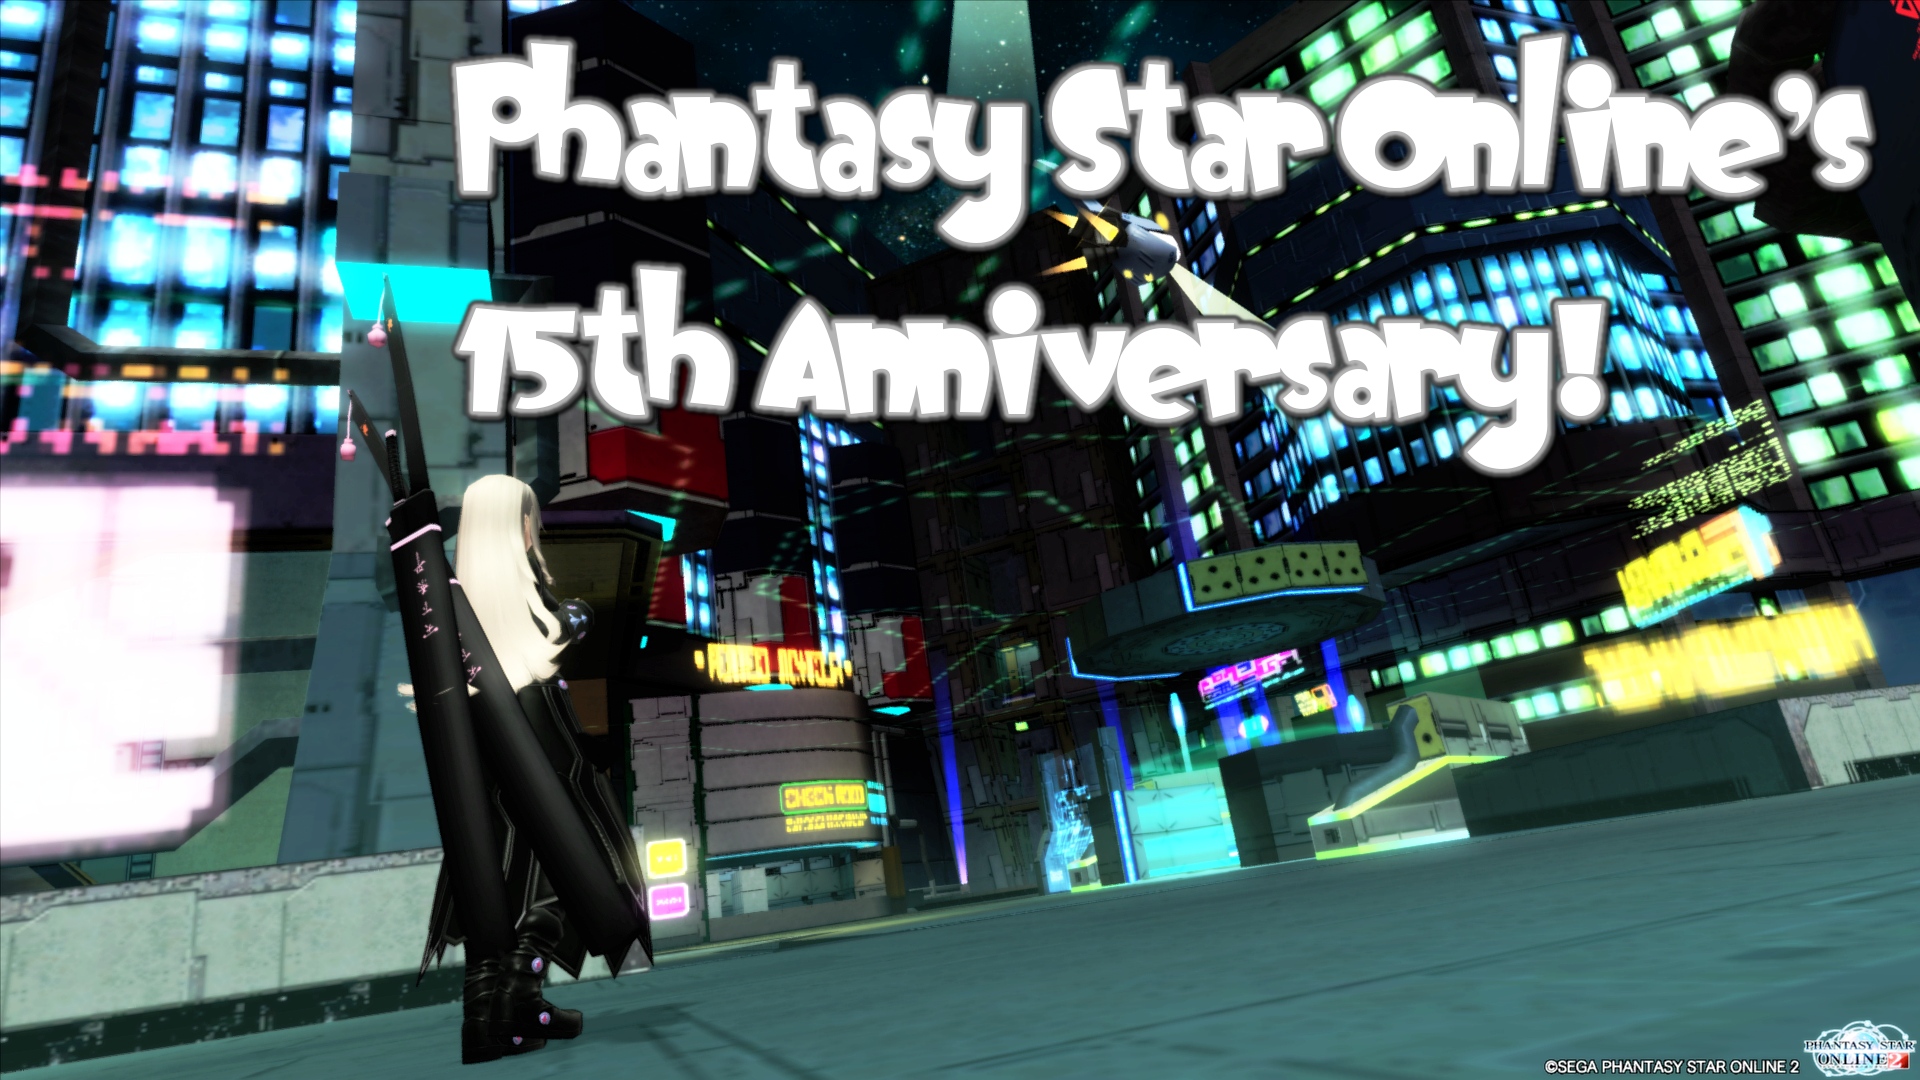 Phantasy Star Online's 15th Anniversary!